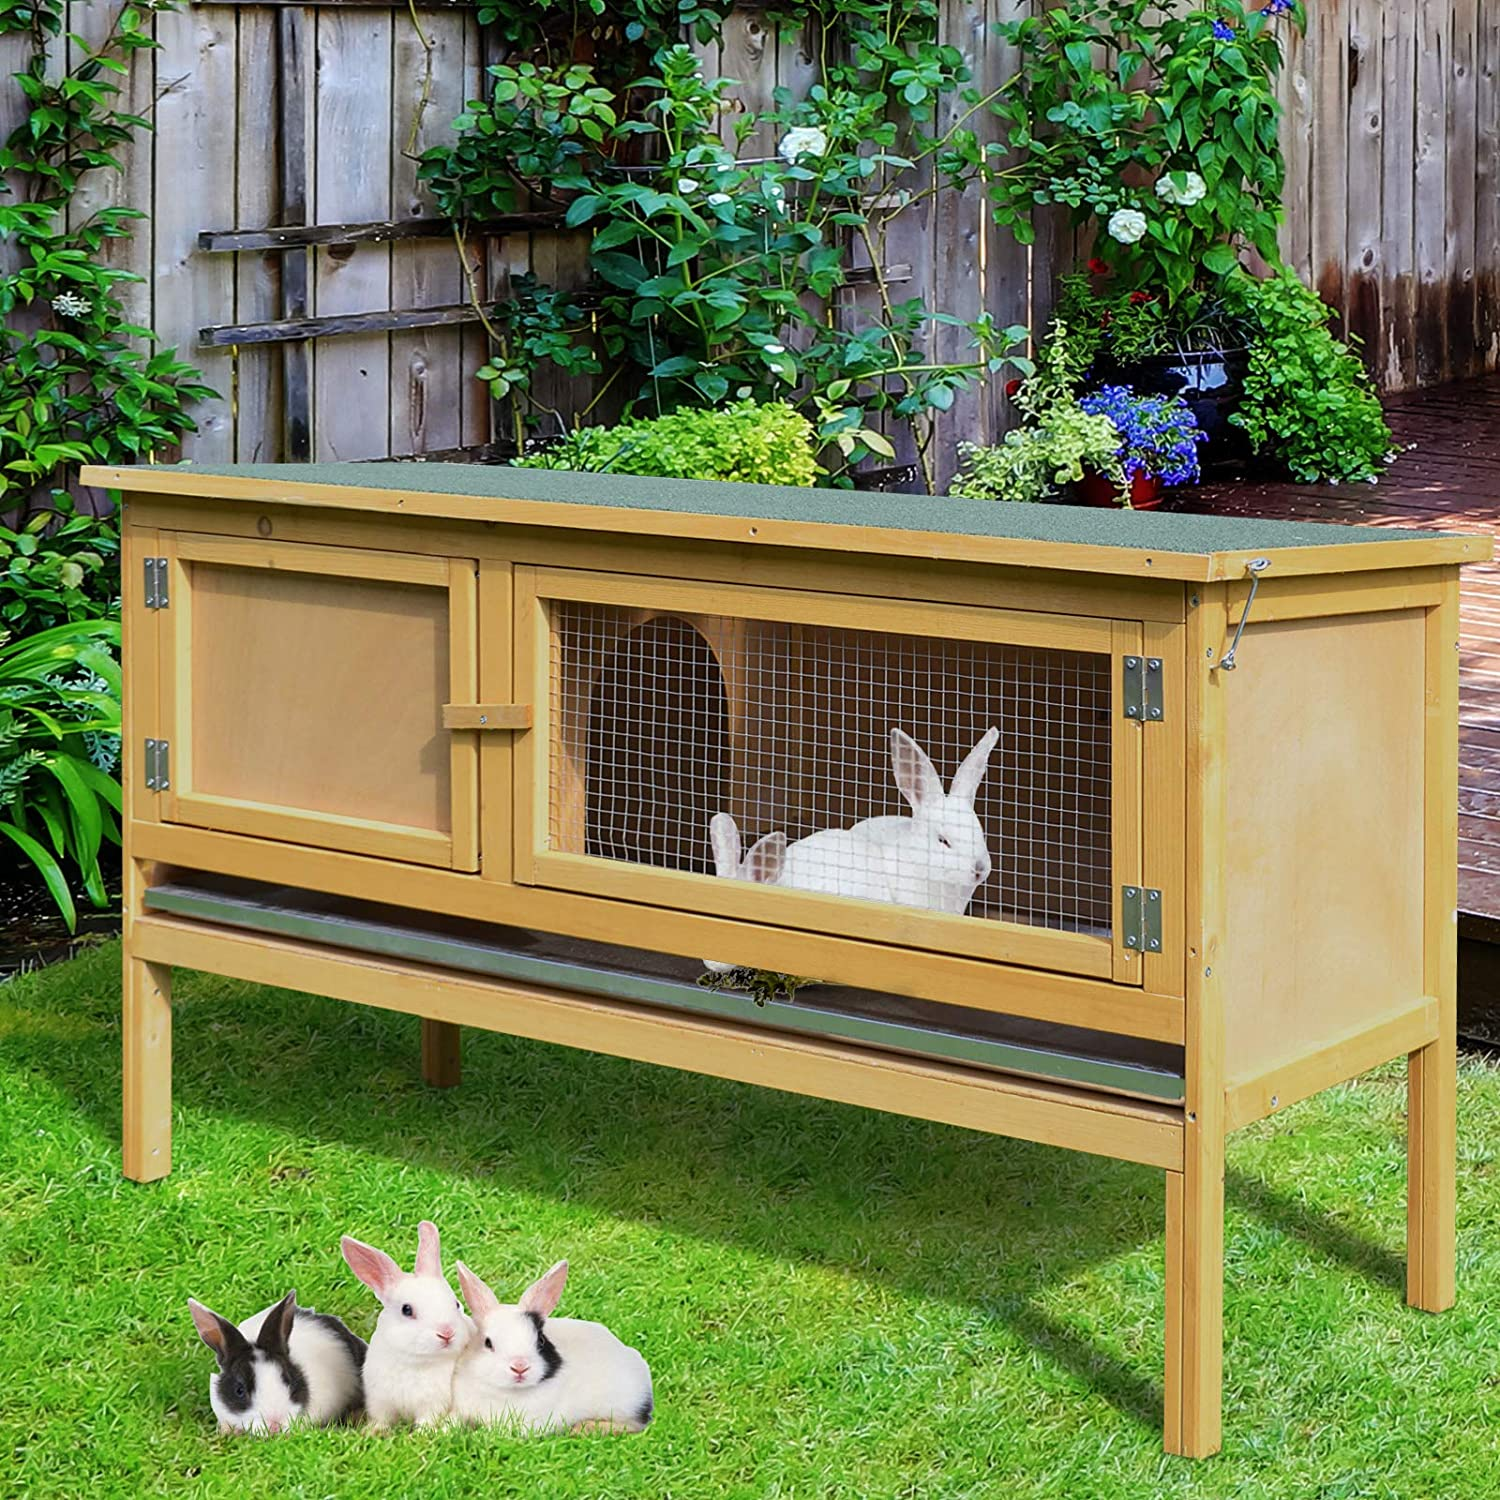 PawHut 45x18x26 Wooden Elevated Rabbit Hutch Backyard Bunny Cage Outdoor Small Animal House w//Slide-Out Tray /& Hinged Top